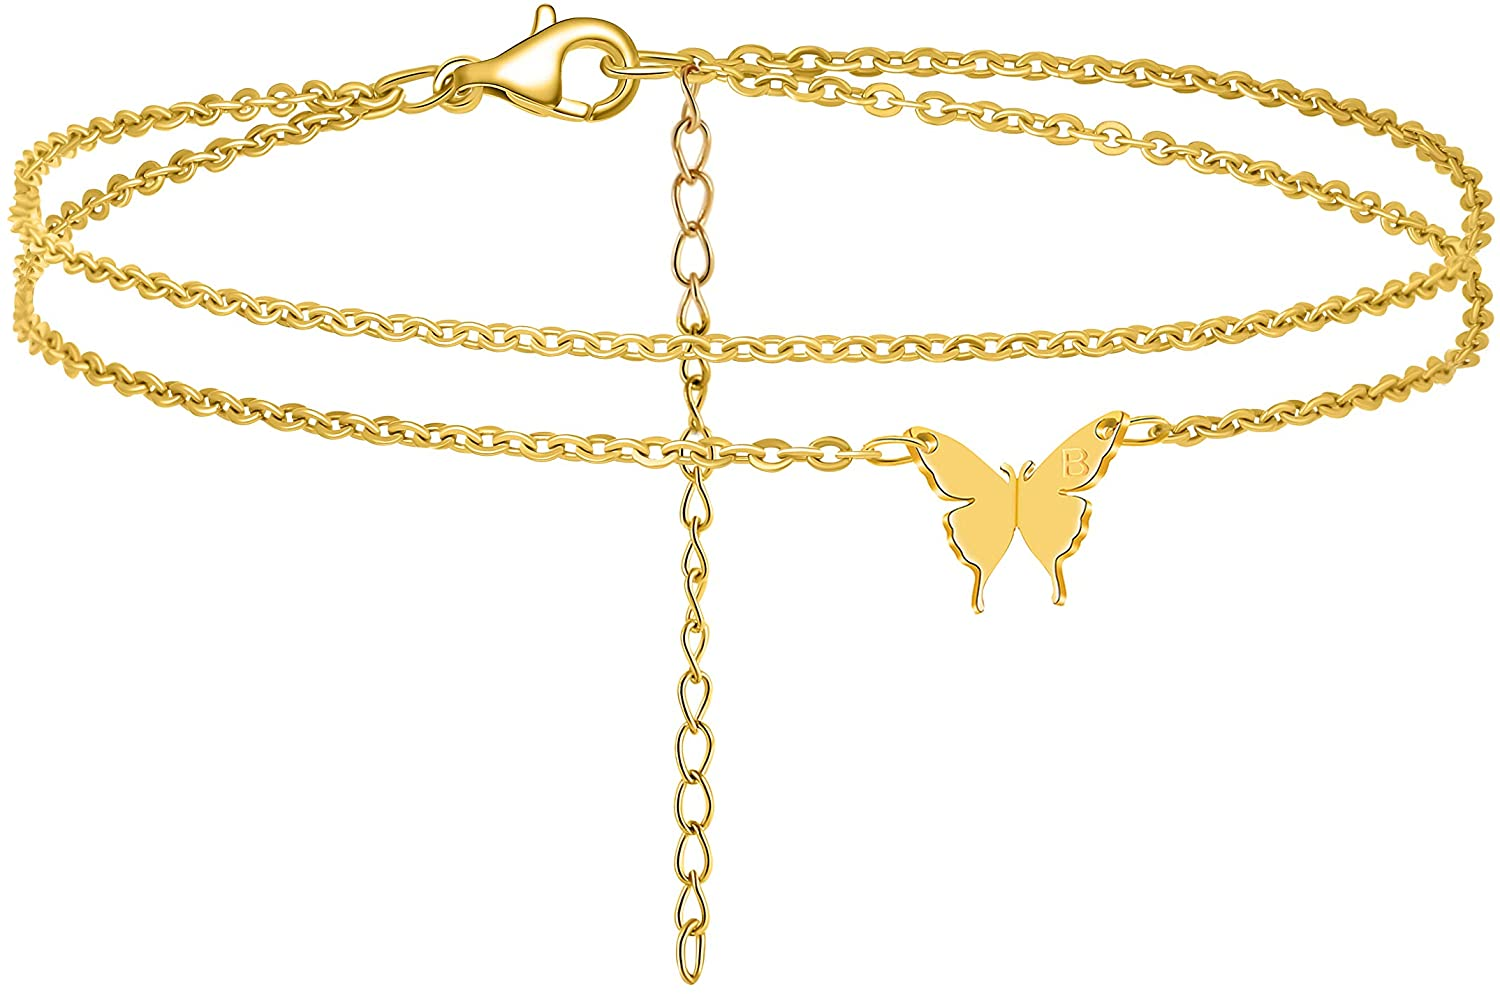 MEMGIFT Butterfly Anklets for Women Teen Girls Two Layered Dainty 18K Real Gold Ankle Bracelet Personalized Handmade Cute 26 Letter A-Z Engraved Fashion Trendy Beach Simple Jewelry